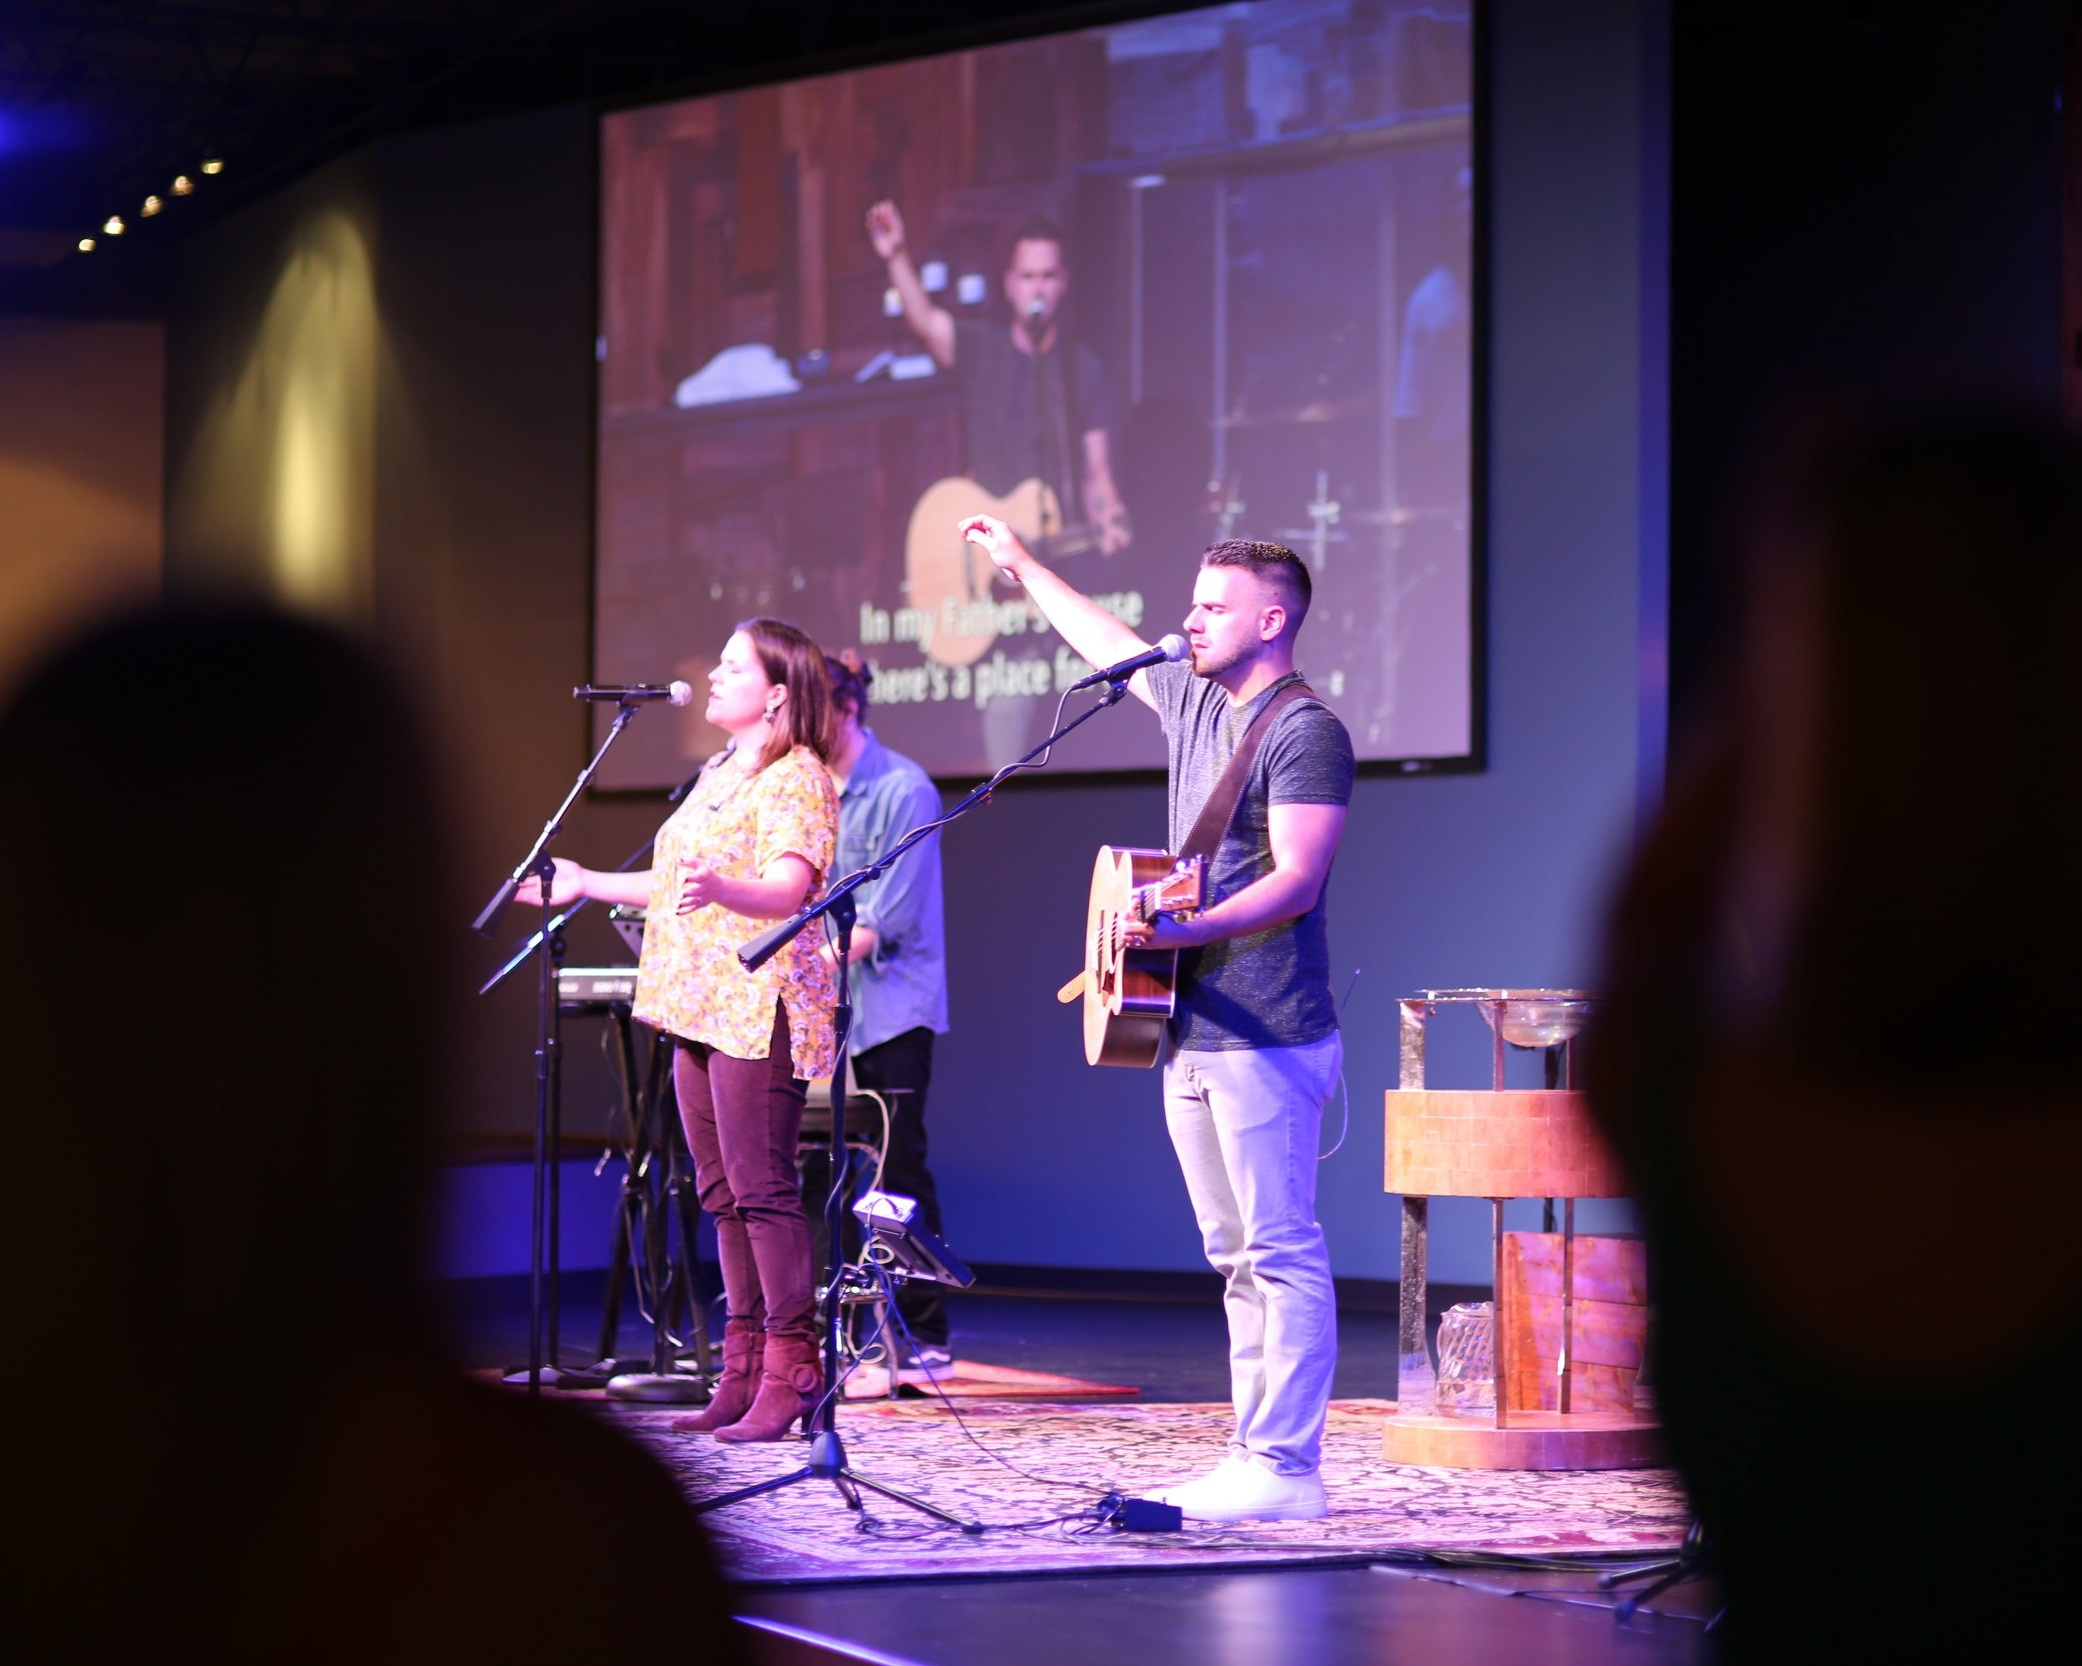 West CampusThe Journey Contemporary Worship - 9:30 AM11 AM